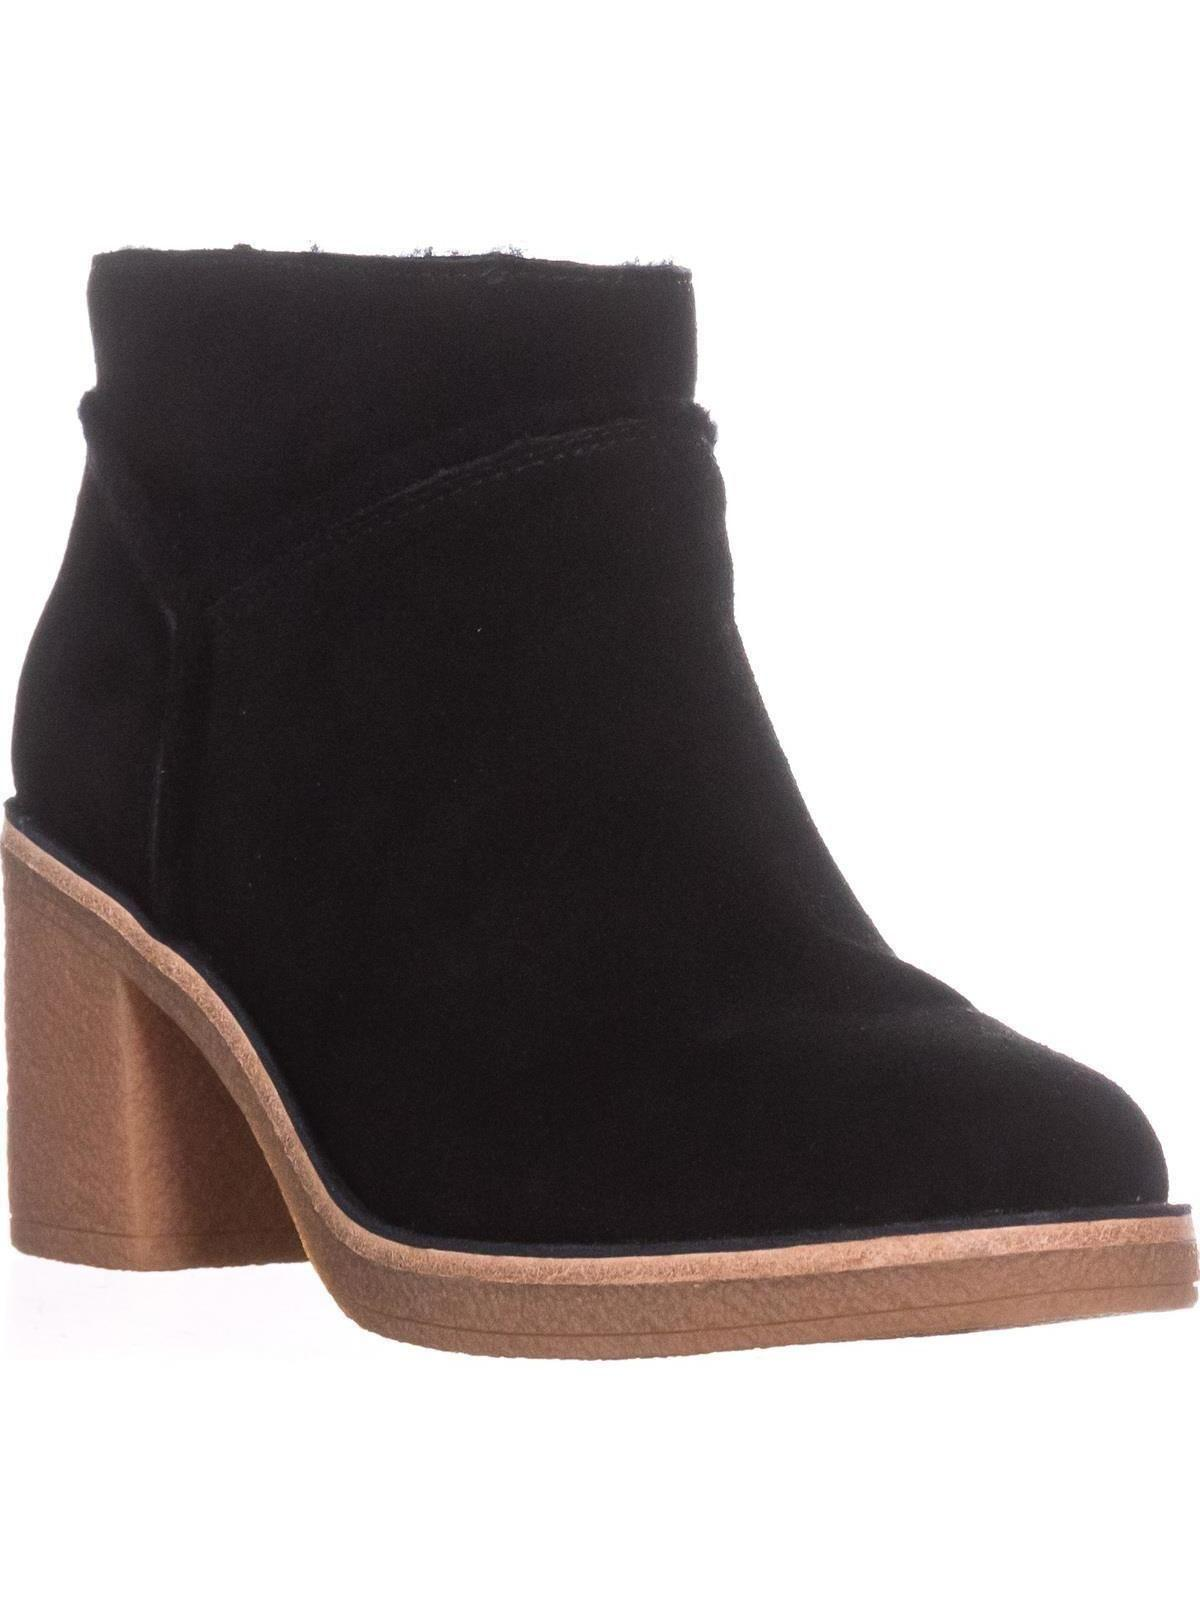 5f8ce0e5917 Lyst - UGG UGG Kasen Pull On Winter Boots in Black